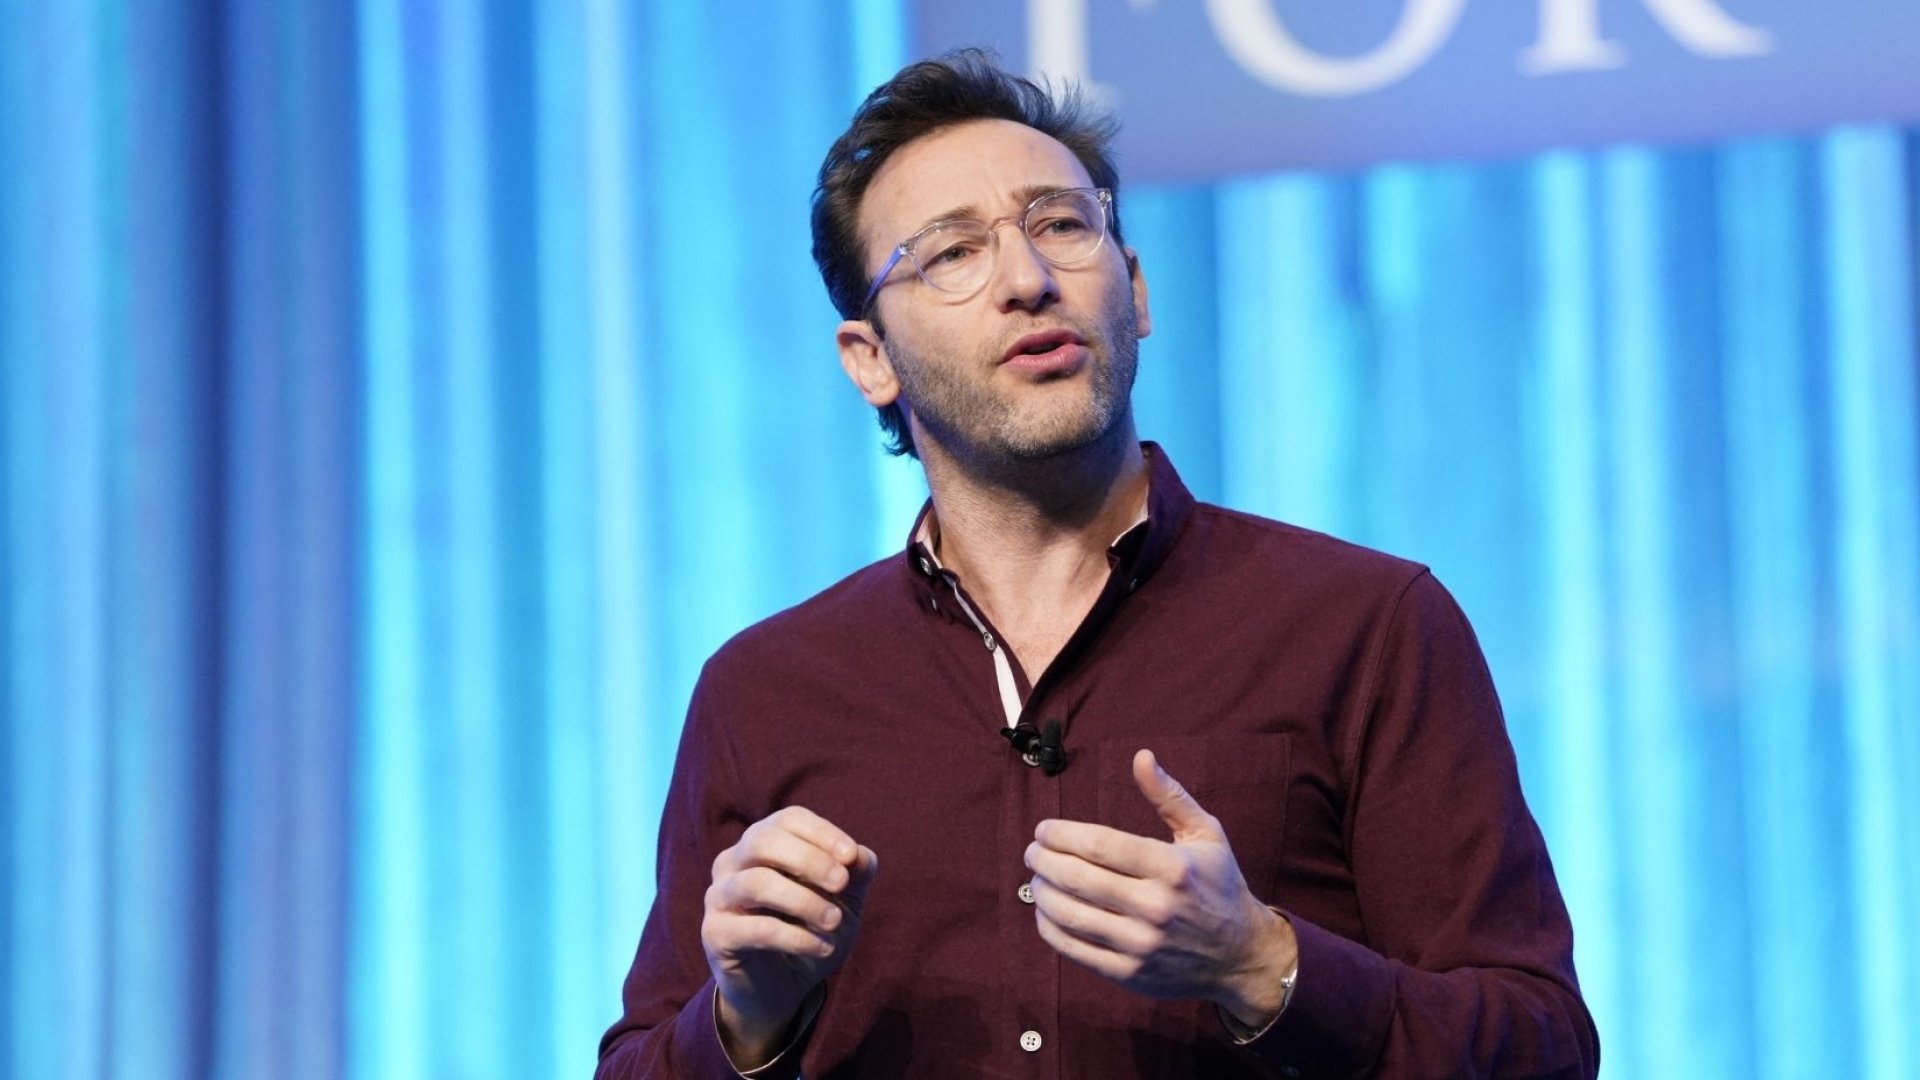 Simon Sinek: These Are Not Unprecedented Times